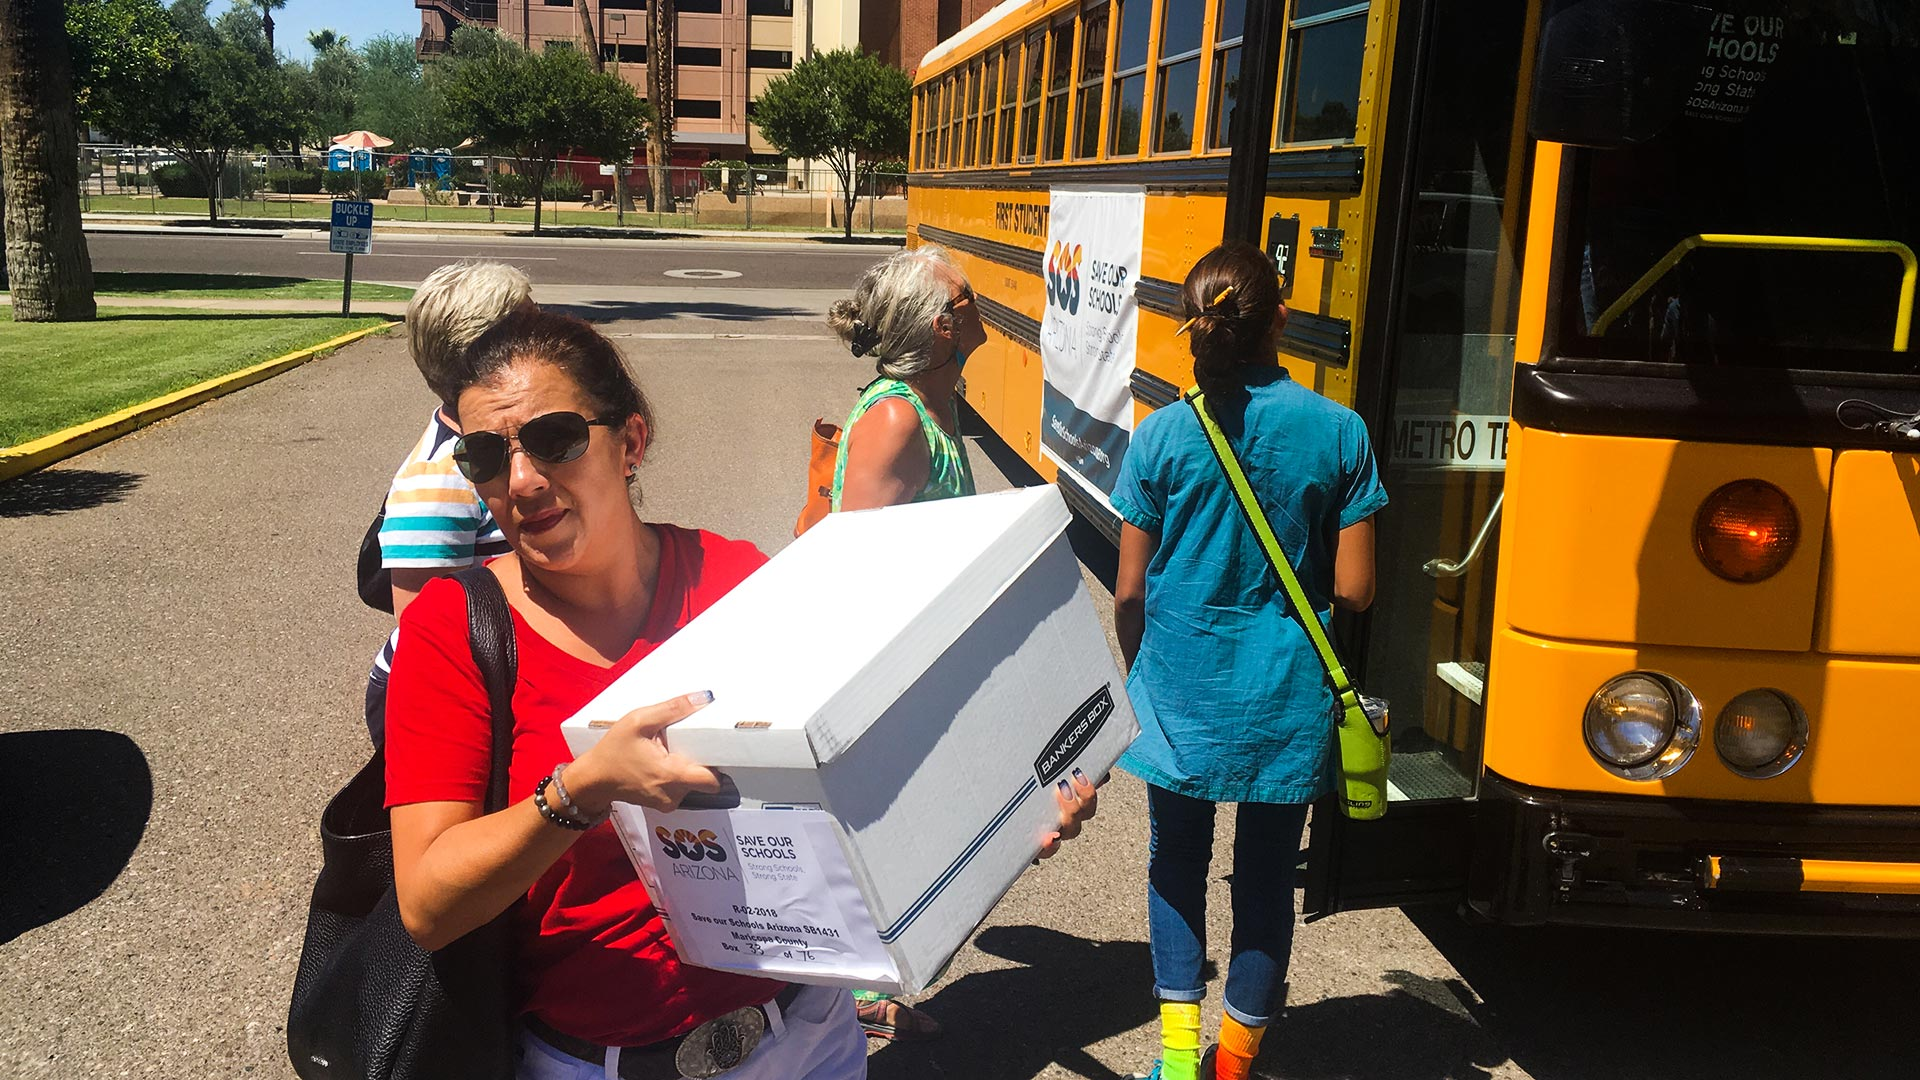 The group Save Our Schools worked to gather signatures opposing legislation that would expand school vouchers in Arizona.